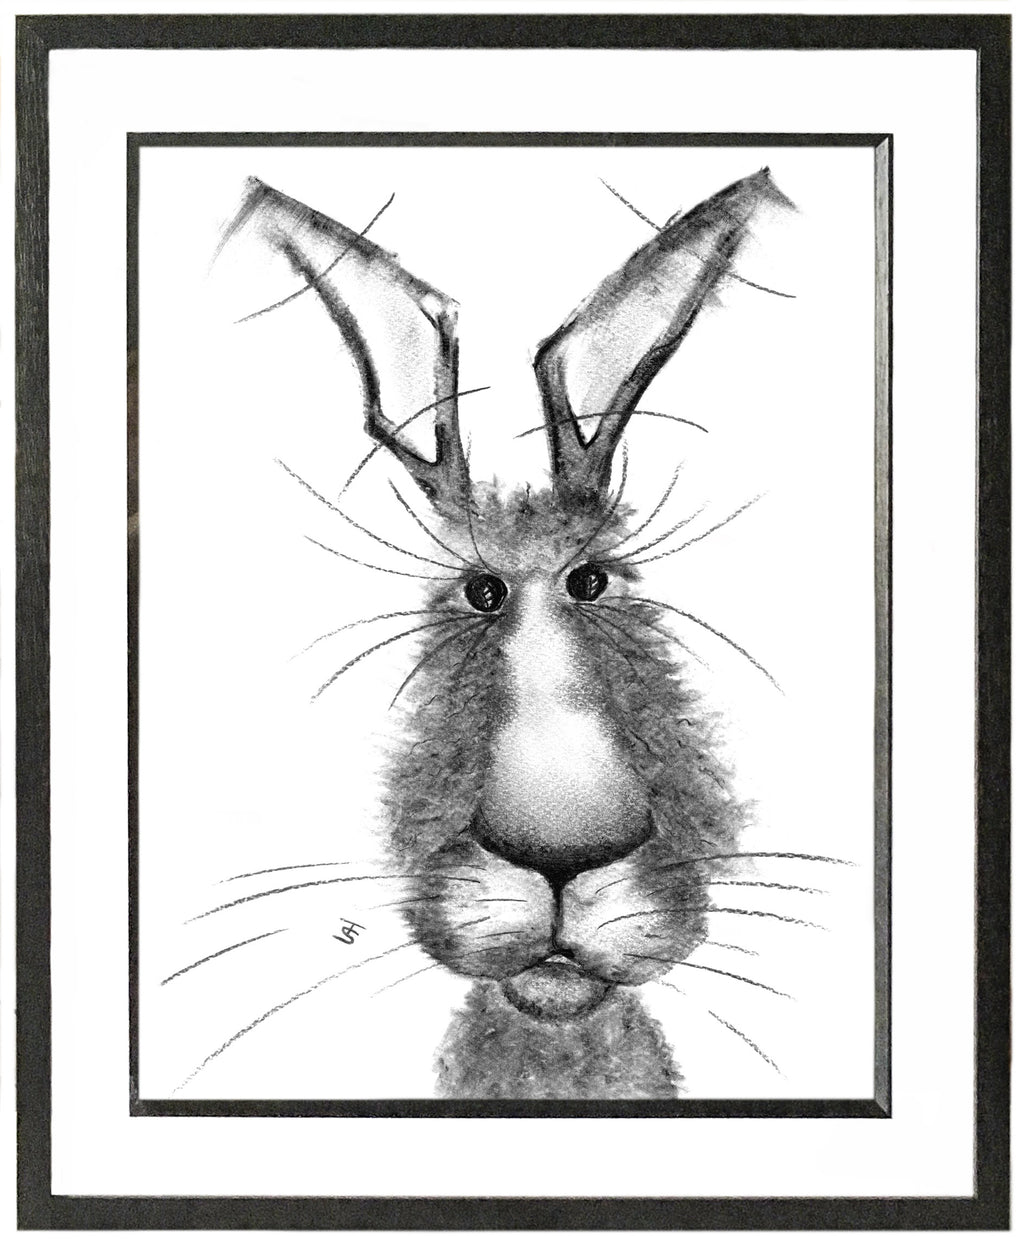 Michael Framed Hare Illustration | GORGEOUS GEORGE